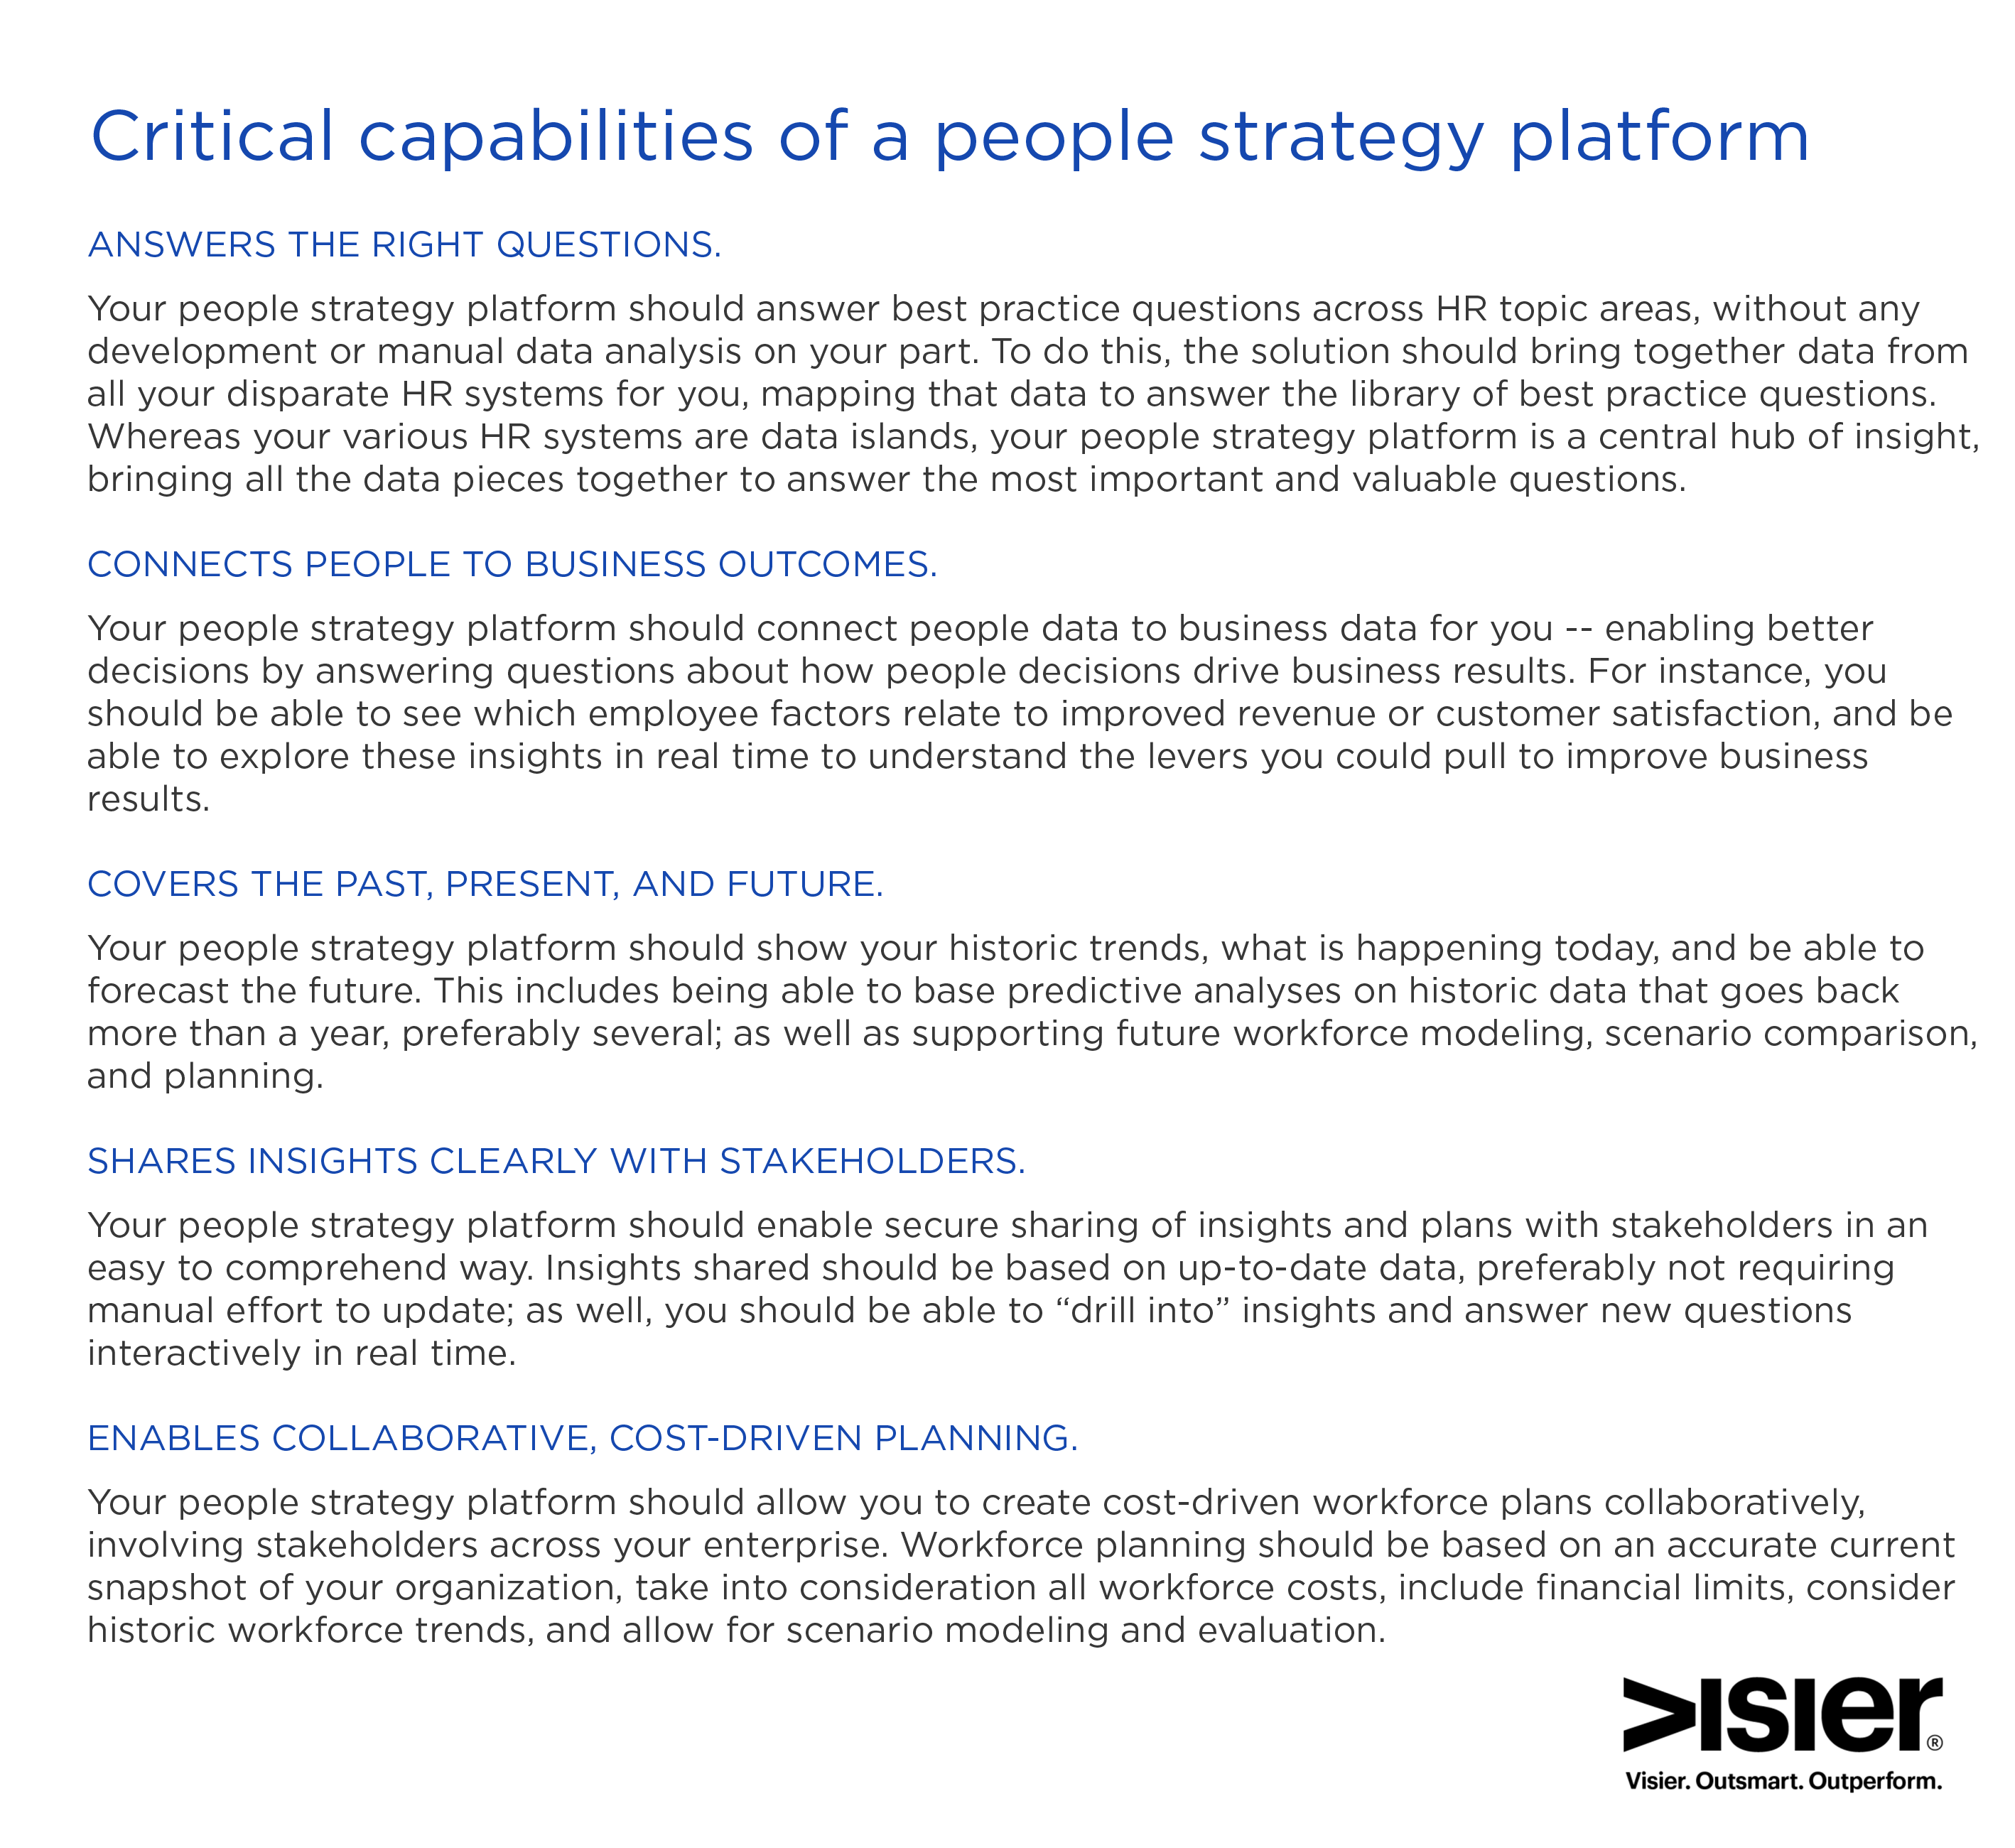 Graphic showing 5 critical capabilities of a people strategy platform